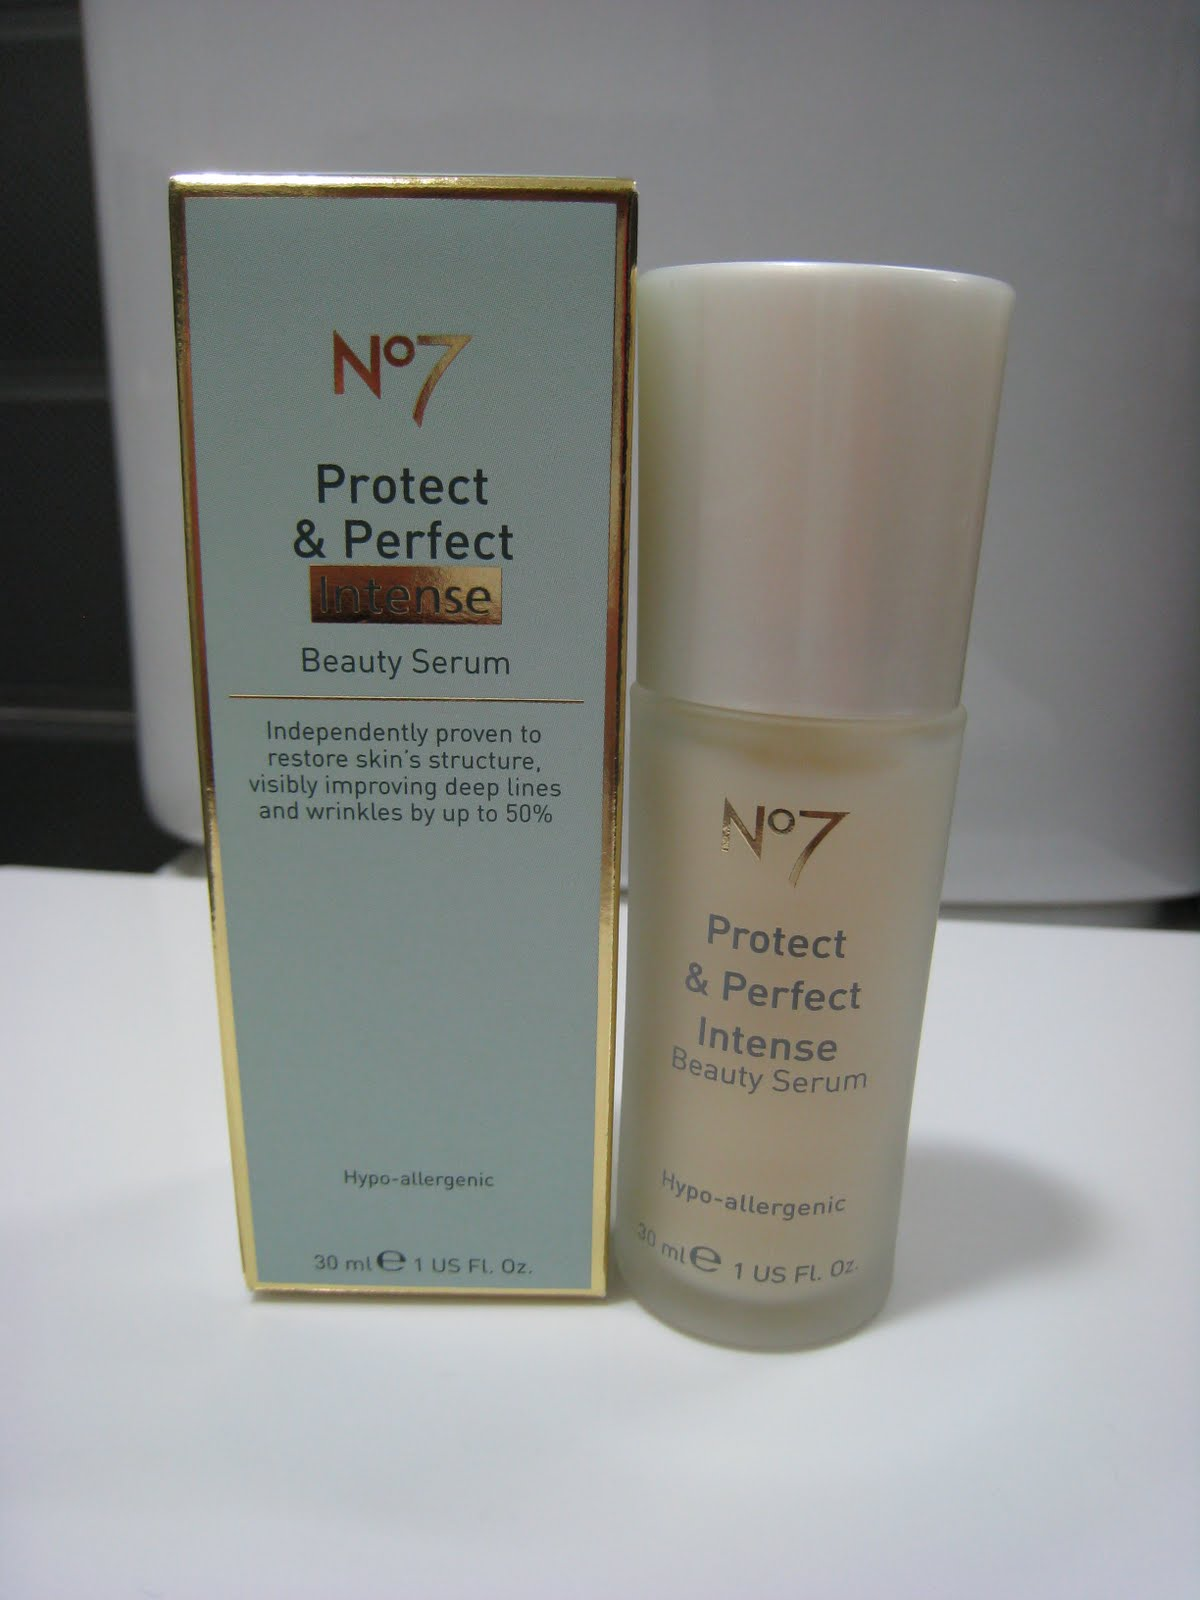 No 7 intense serum